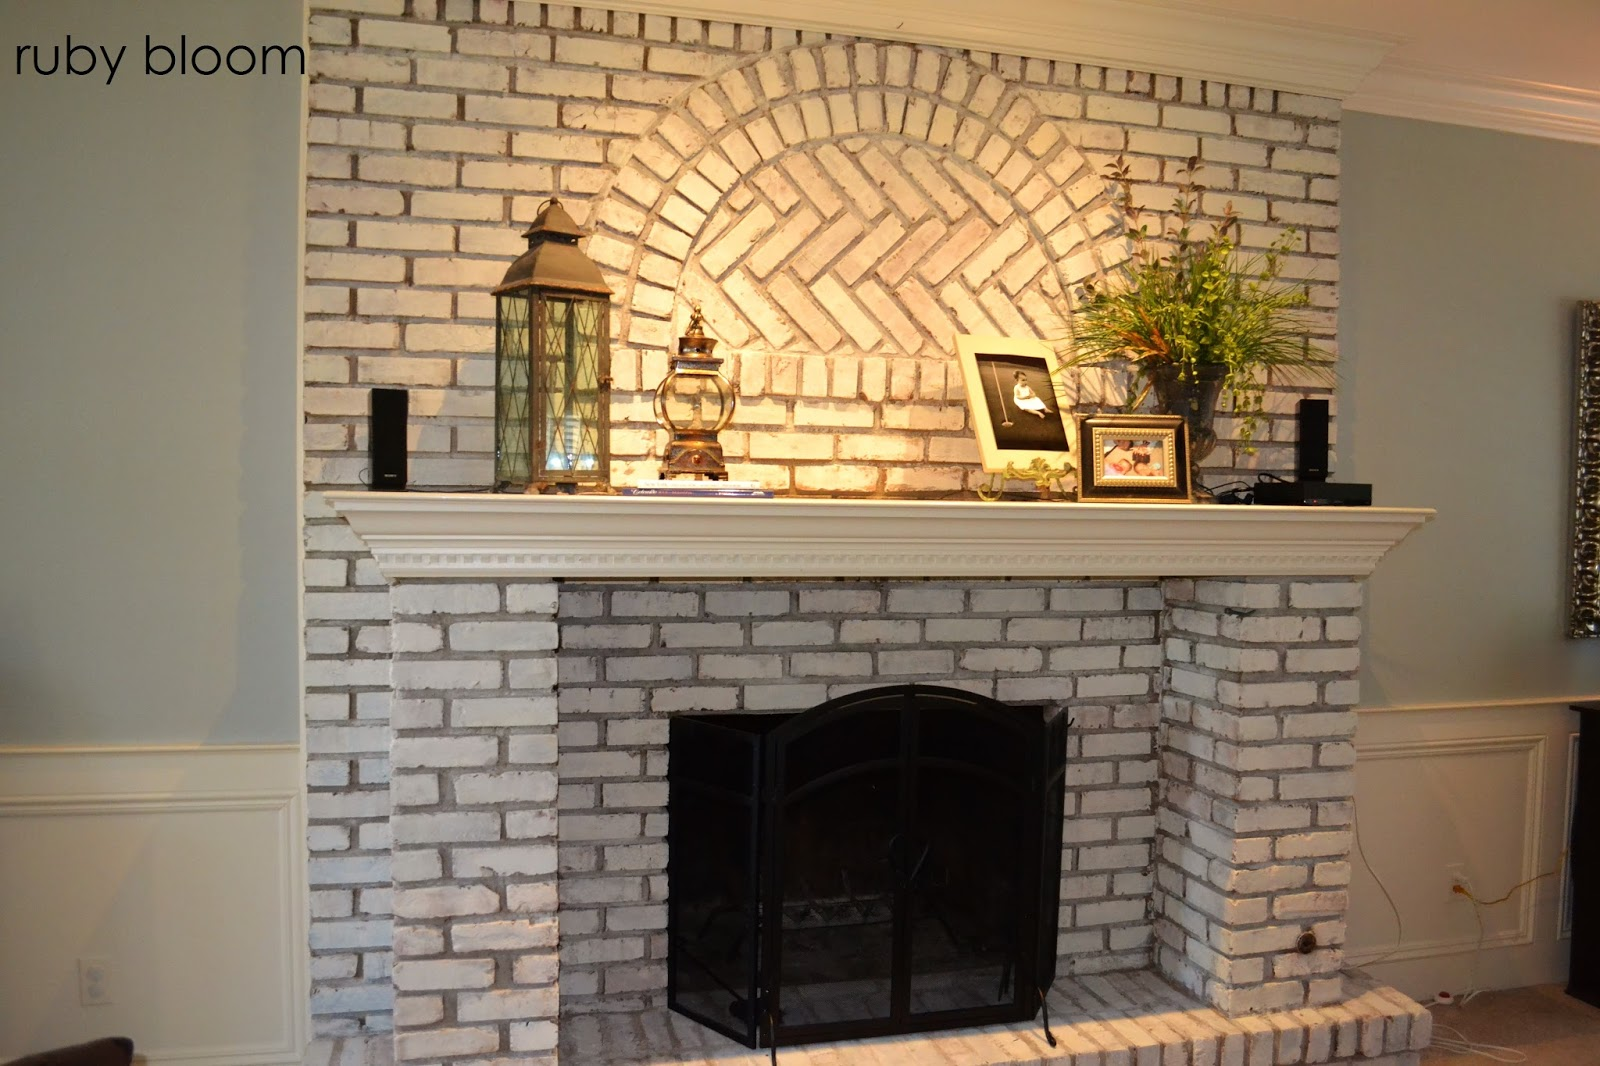 ruby bloom: Painted brick fireplace